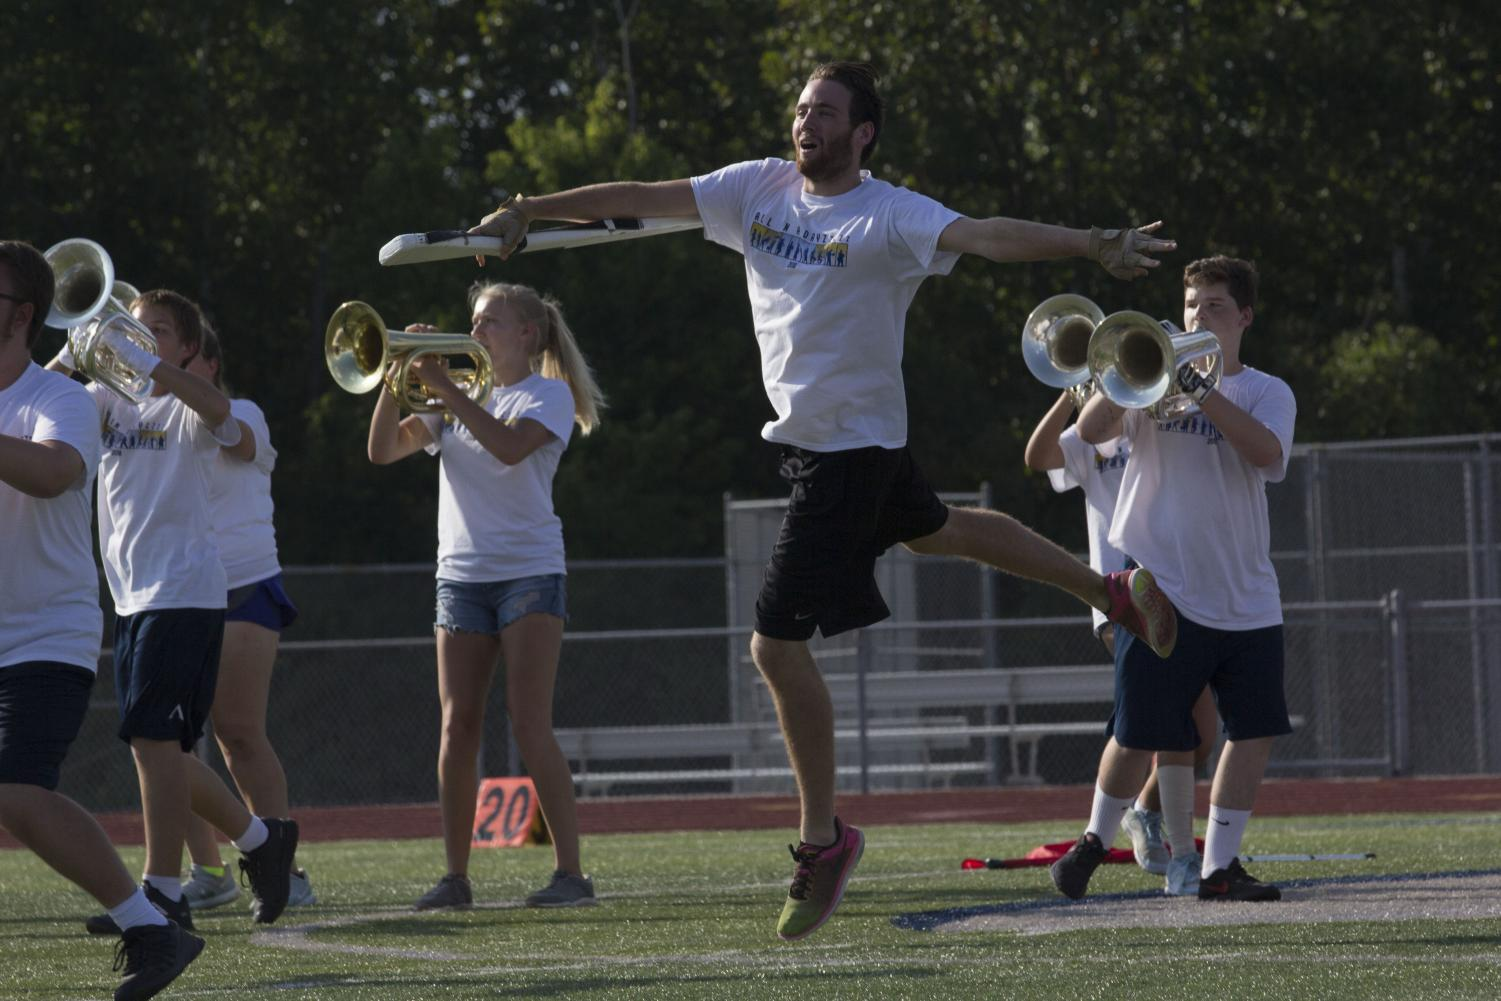 Senior Color Guard member Michael Foley leaps into their air. The routine for